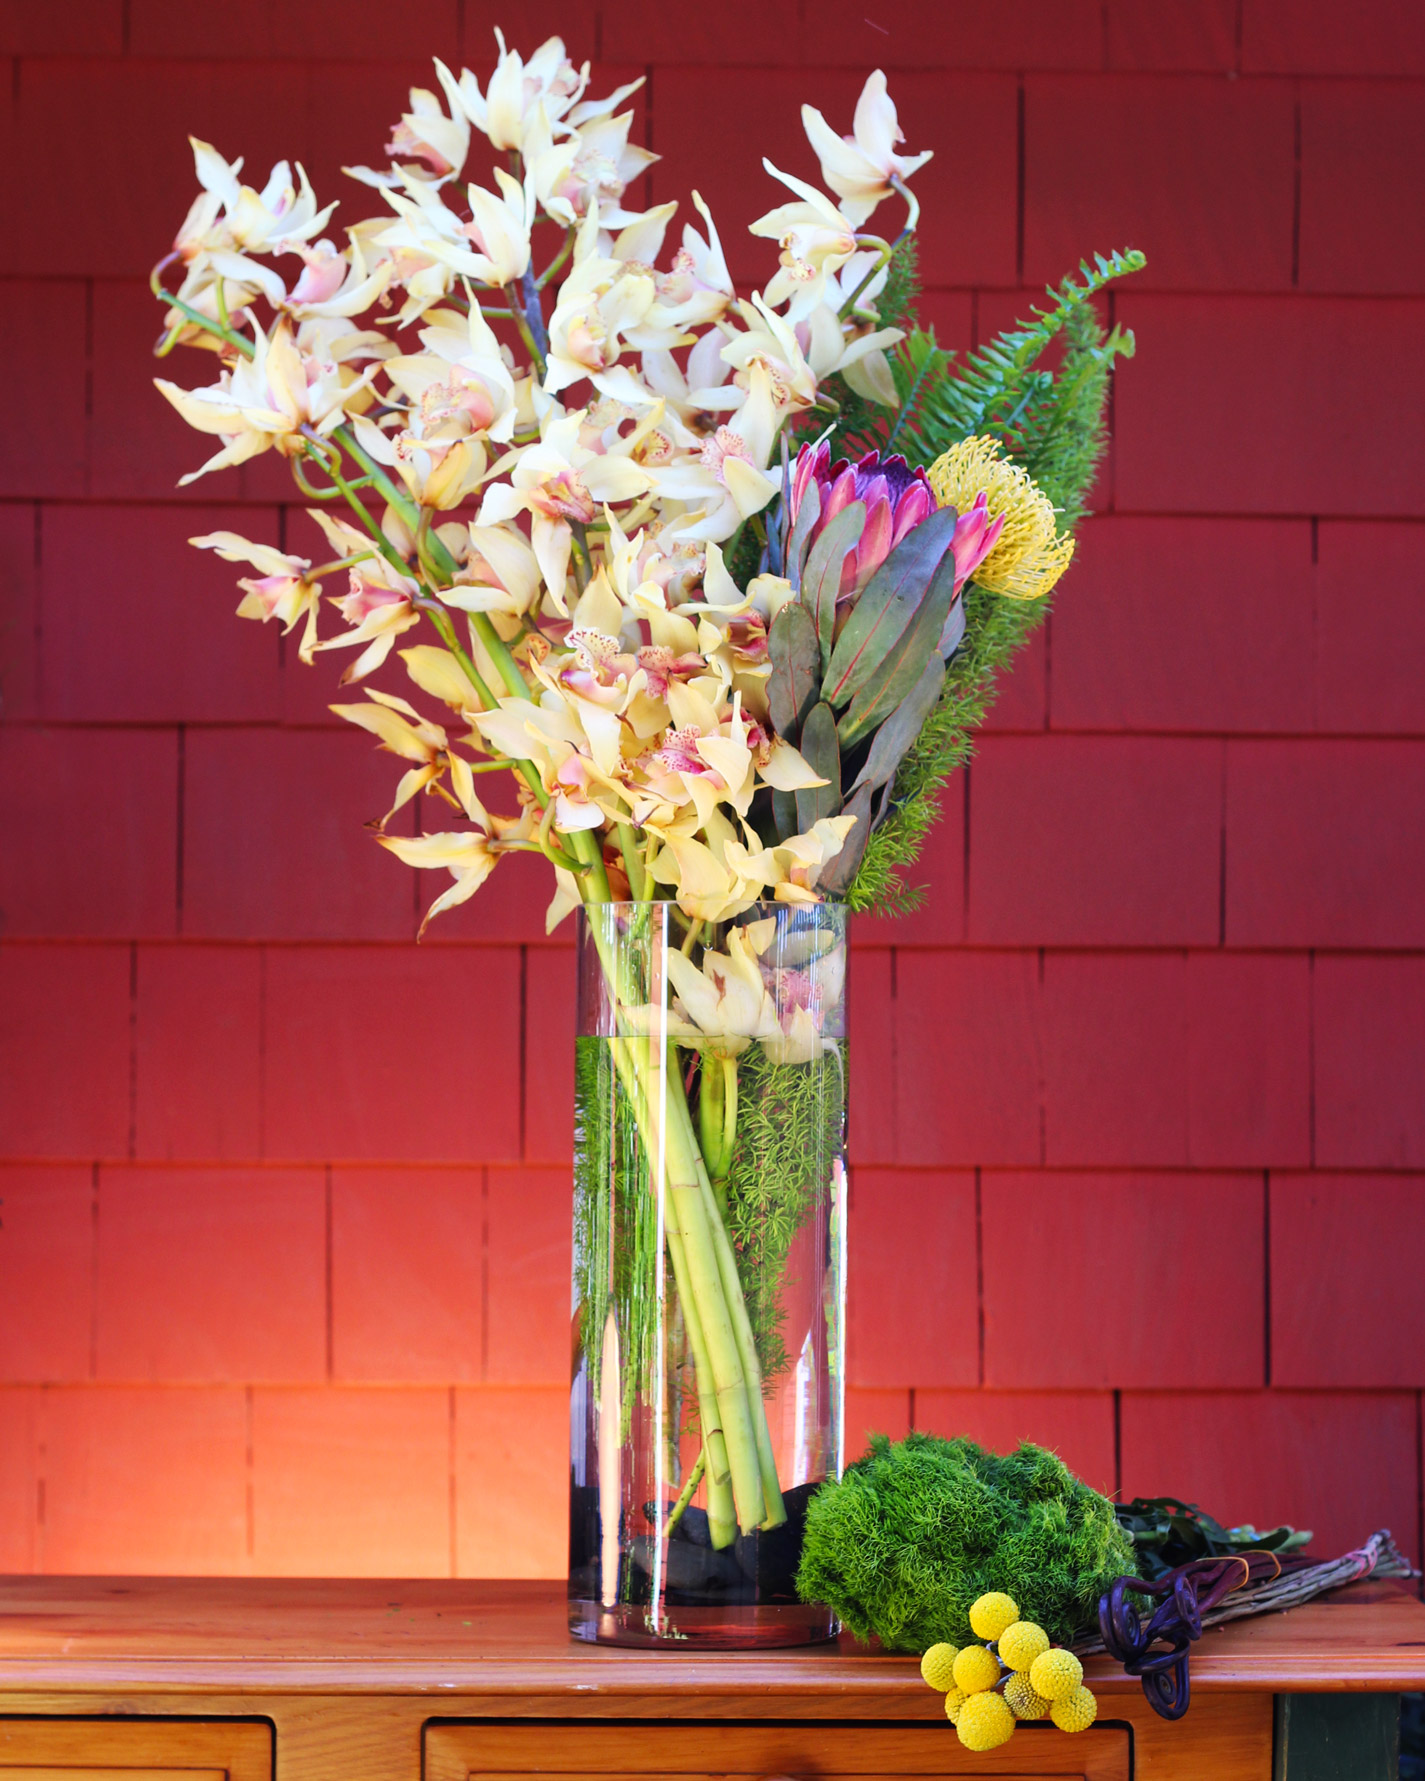 Put orchids left to center with ferns, Protea & Pincushion on right.